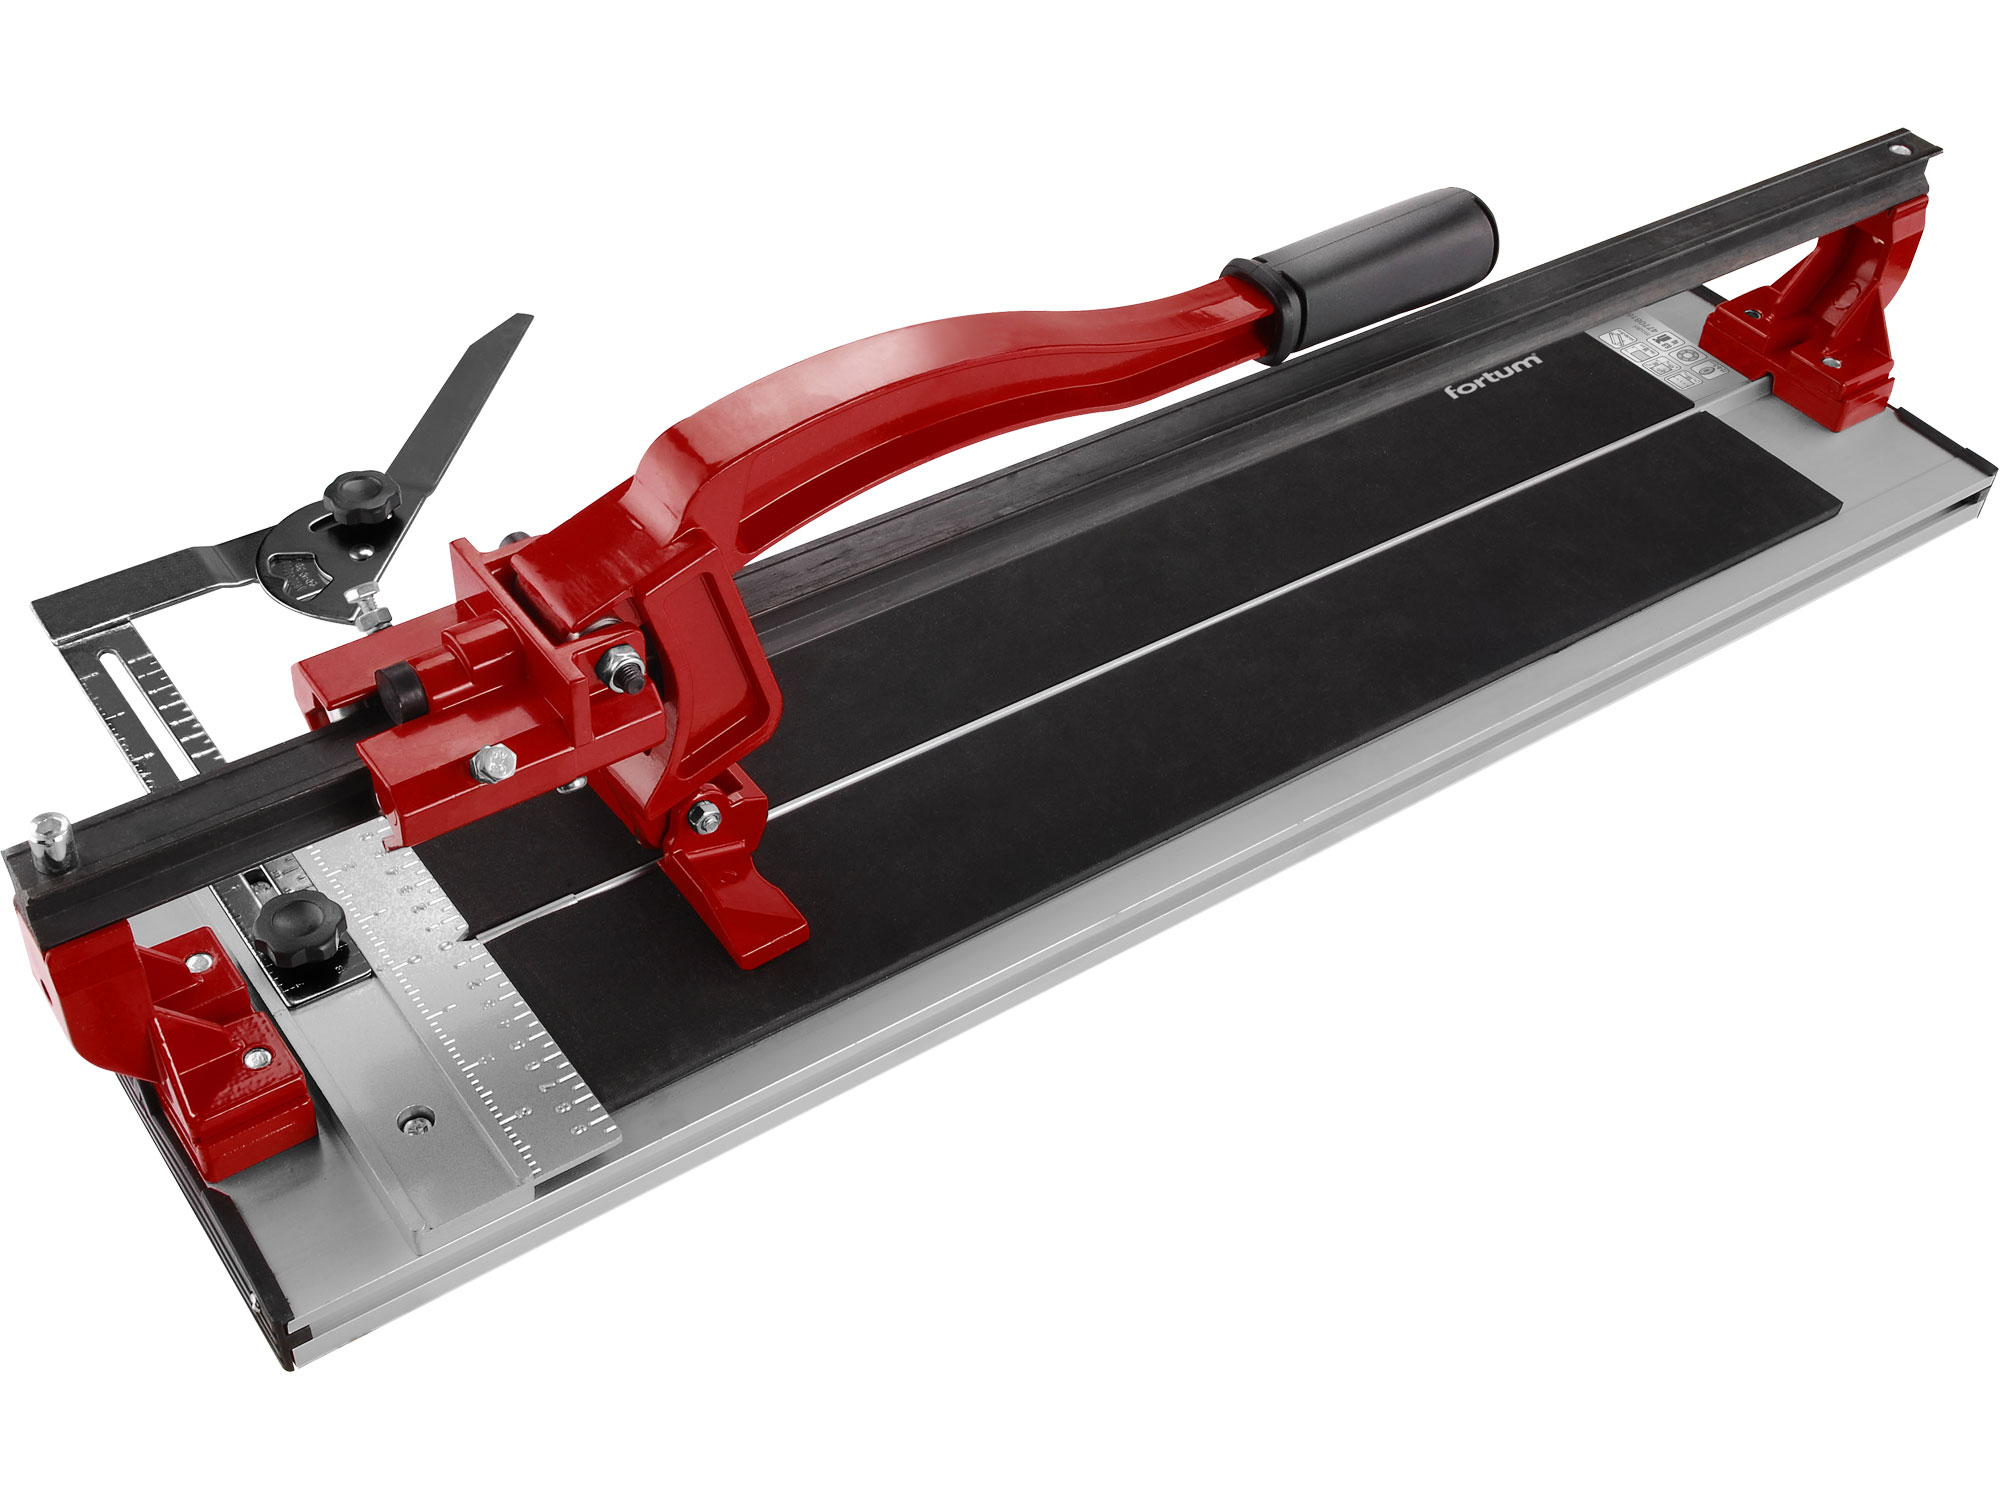 Tile Cutter 600mm with ball bearings, AL base, 600mm max cut